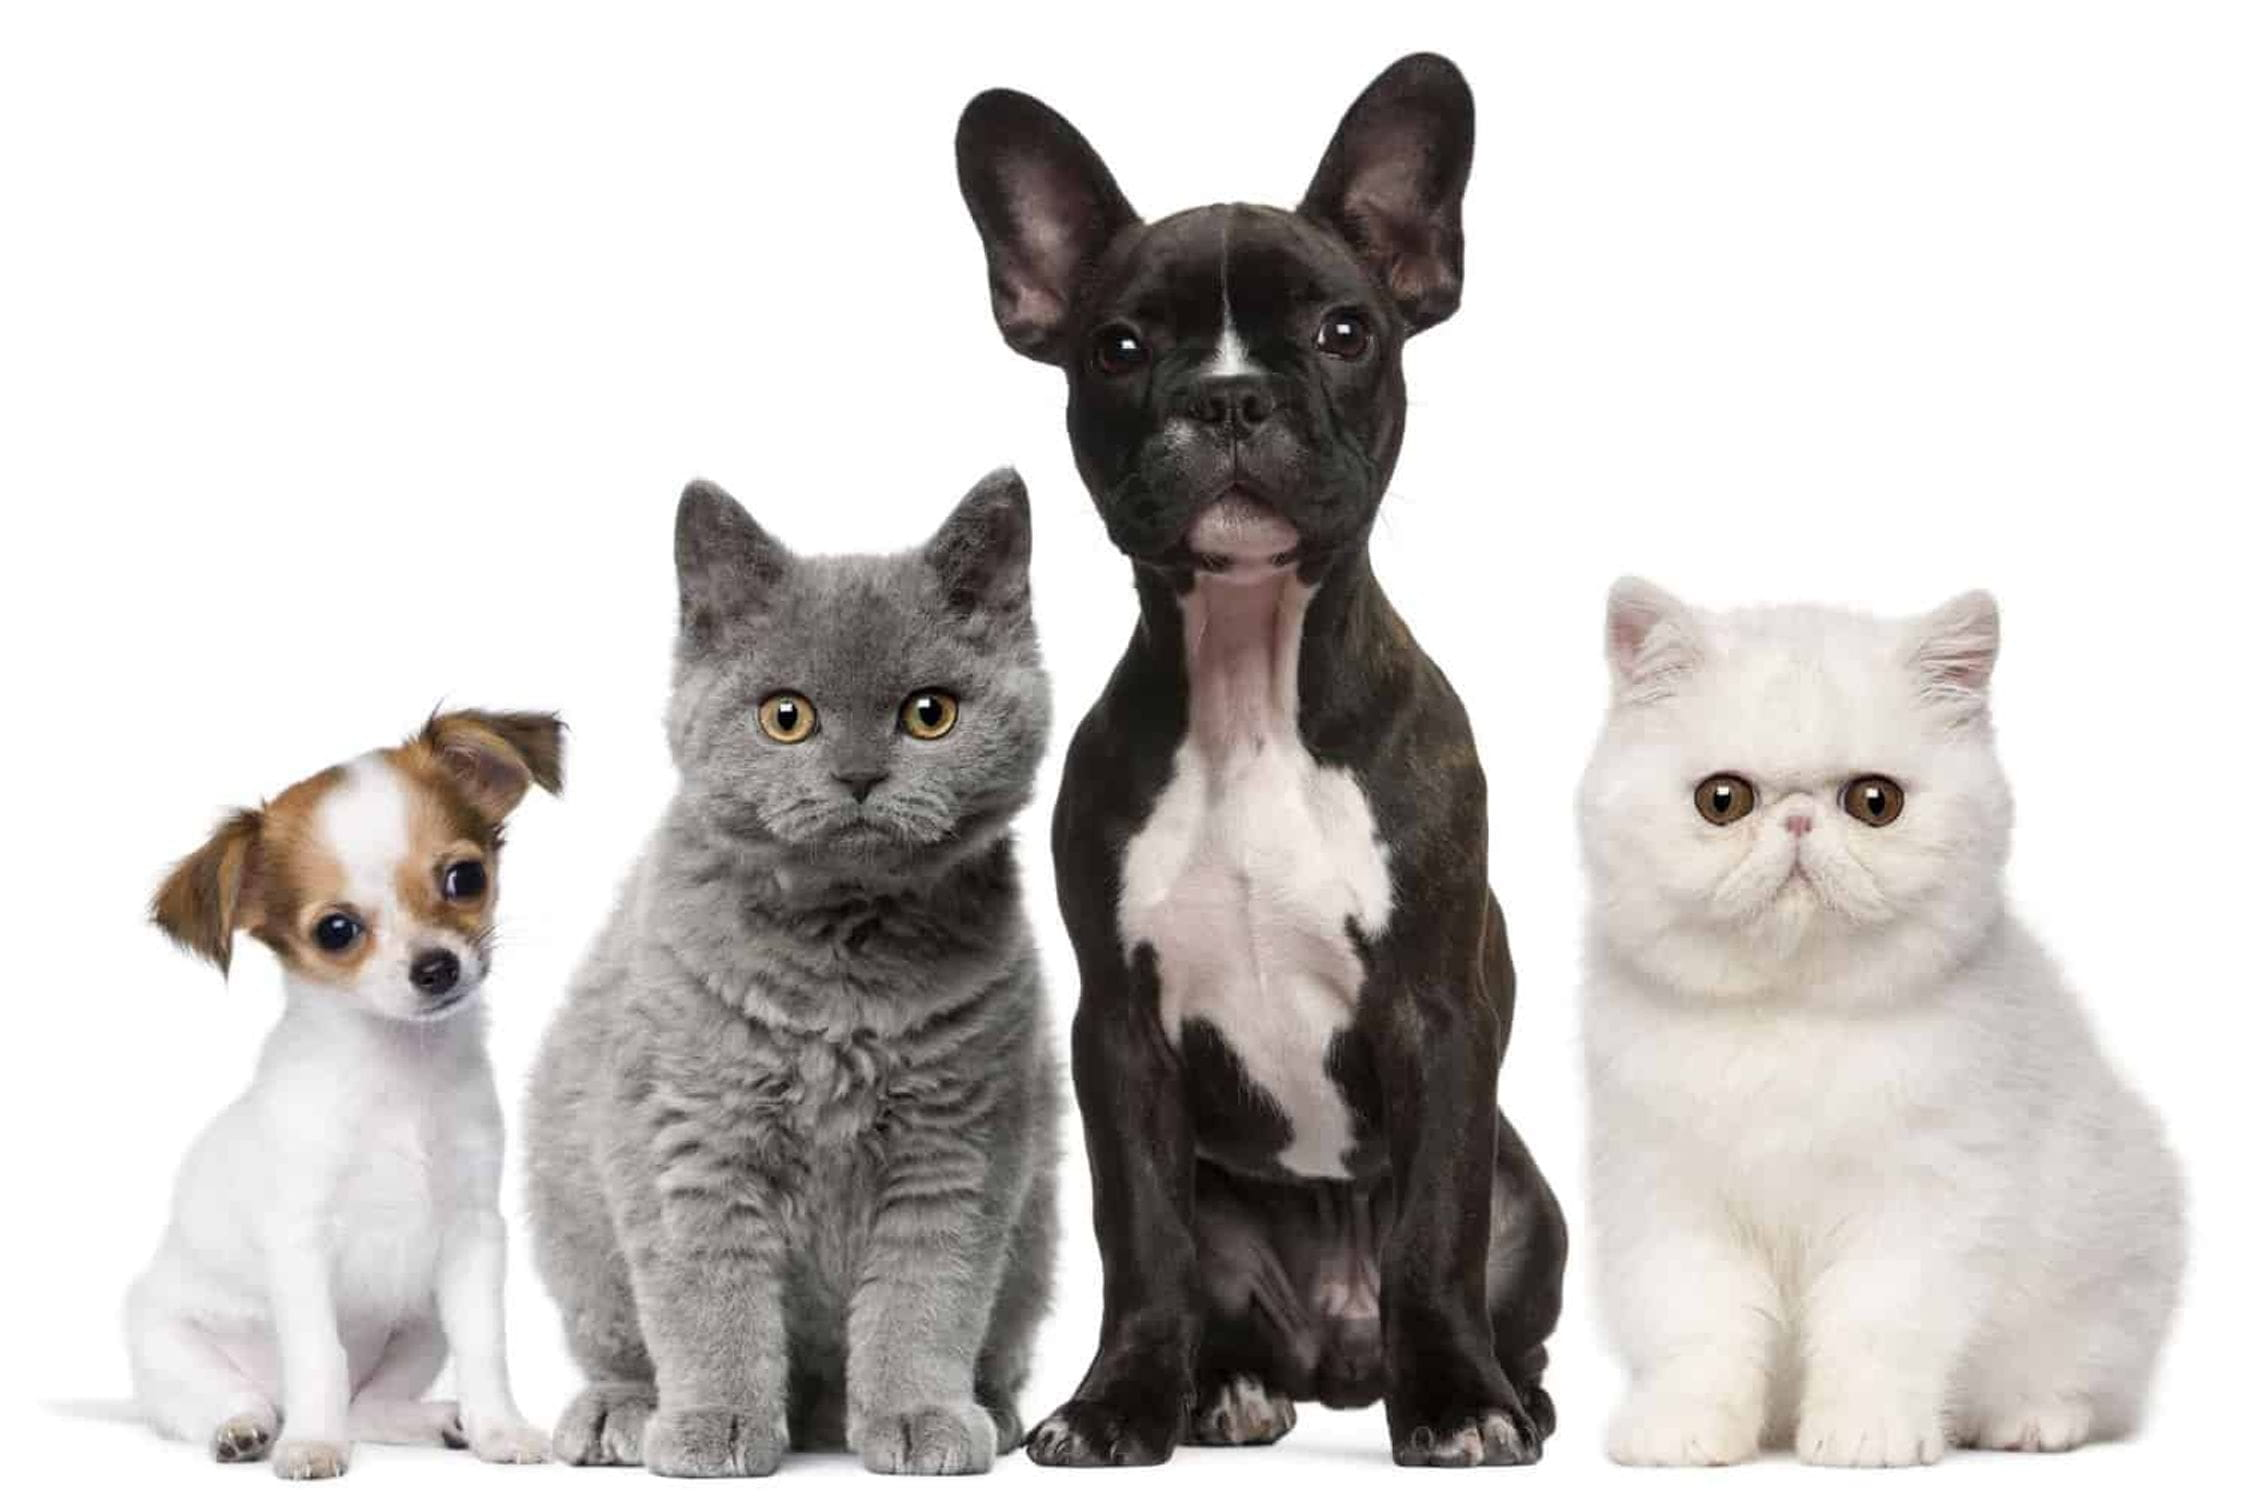 Two cats and two dogs.